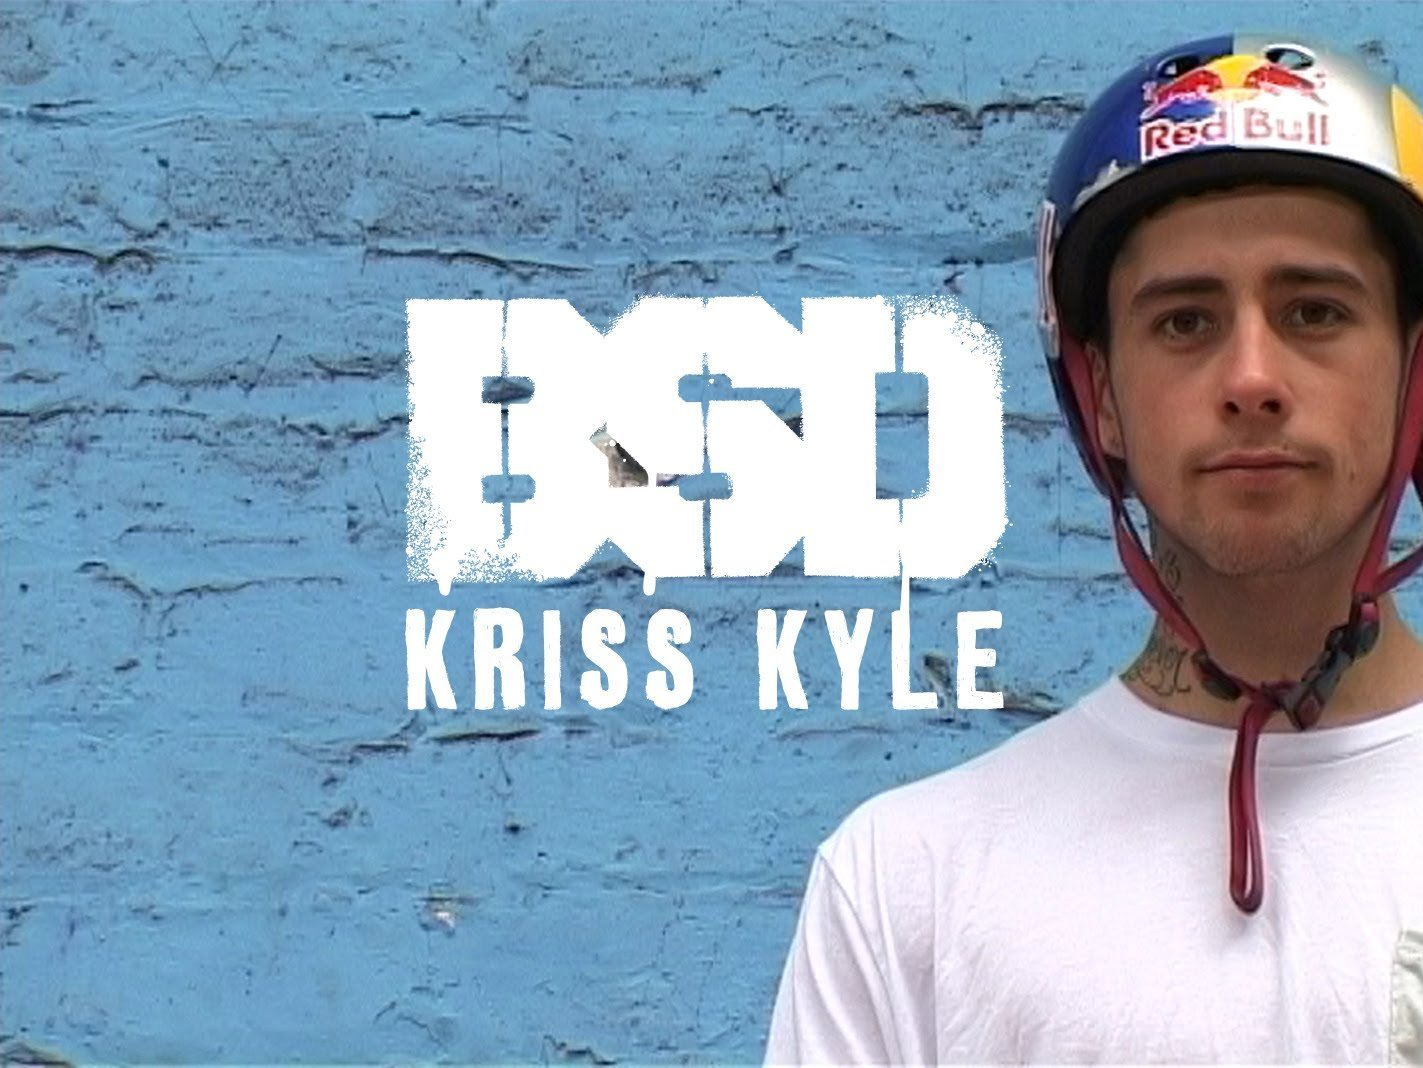 Kriss Kyle at home